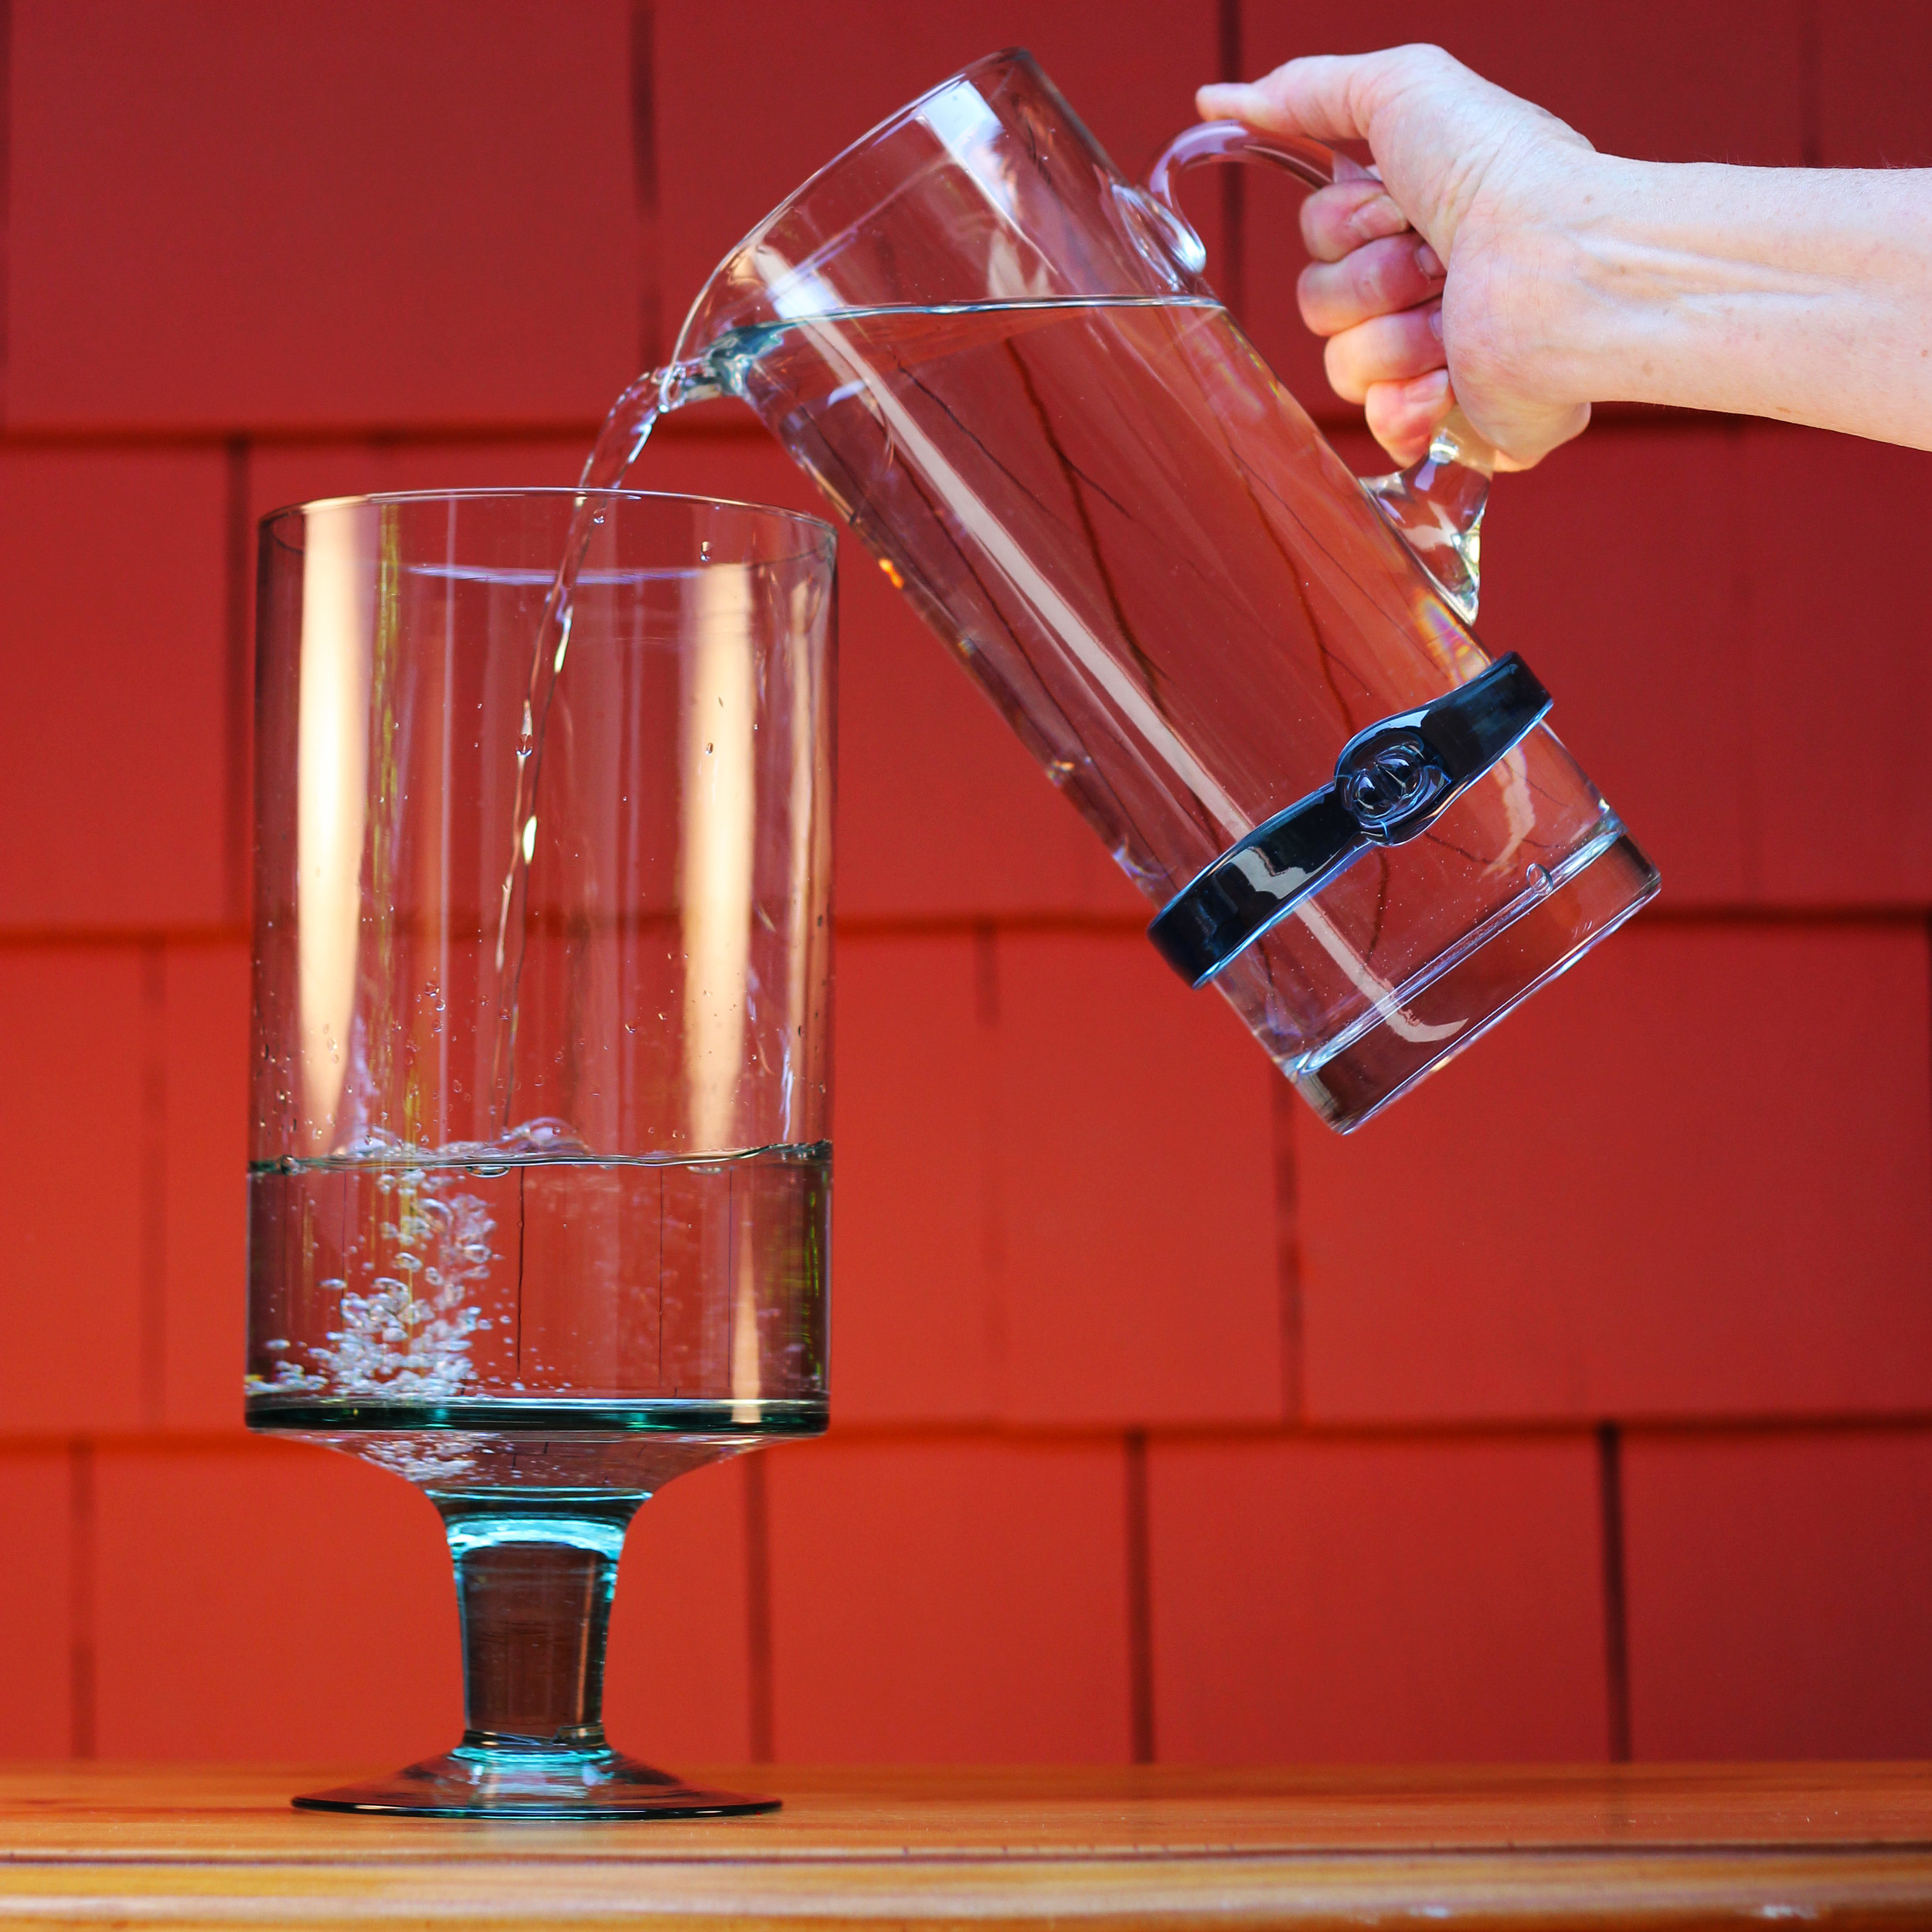 Pour water to about 2.5 inches below the top.